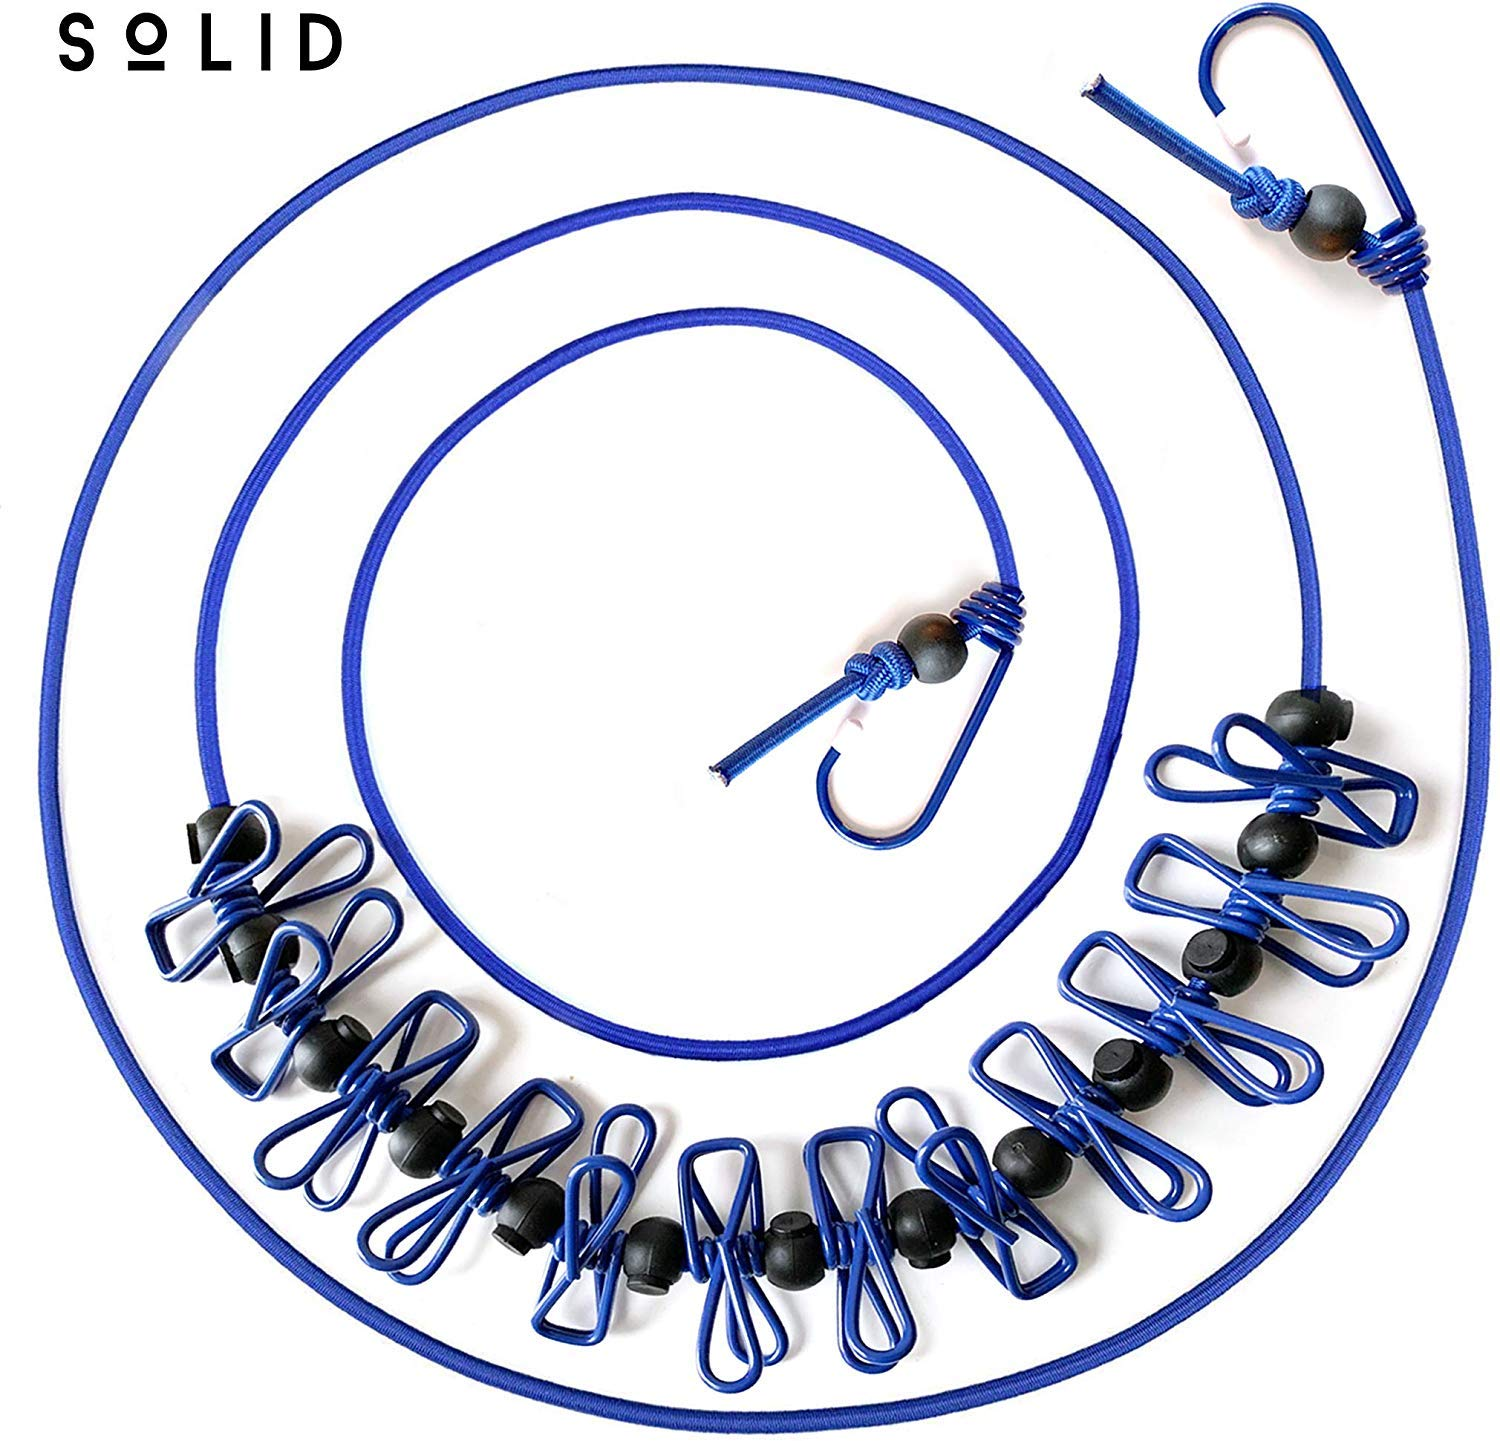 Solid (TM Portable Travel Clothesline for Home, Hotel & Camping, Indoor/Outdoor (Blue), 12 ft Elastic line, 2 Adjustable End Hooks, 12 Clothespin, 15 Movable Locking Beads, Travel Pouch Included